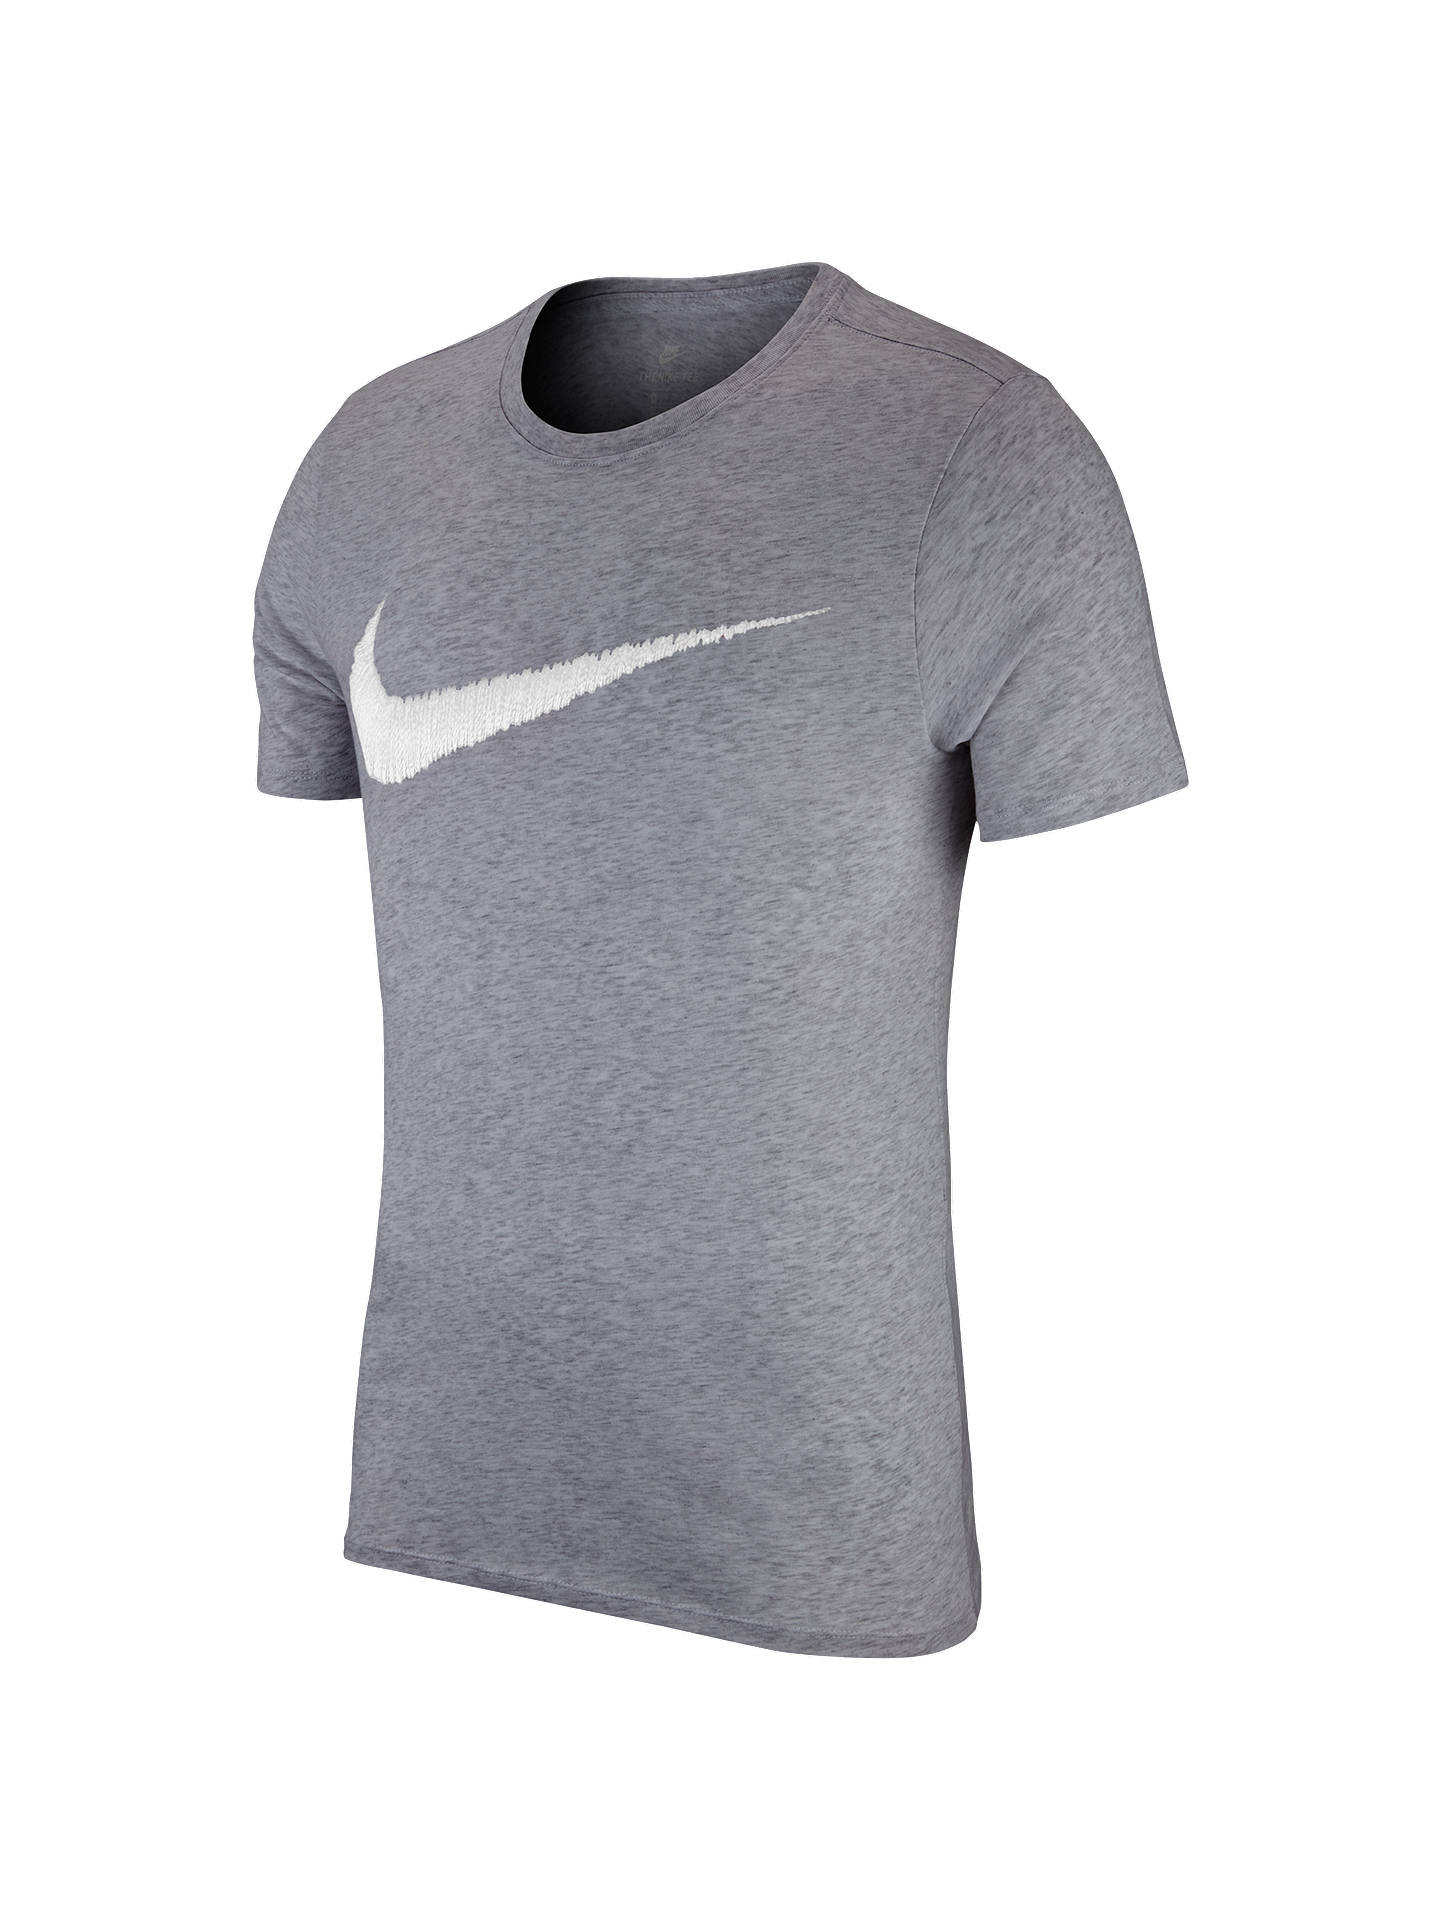 0a7344a24 Buy Nike Sportswear Swoosh Cotton T-Shirt, Dark Grey Heather/White, XL ...